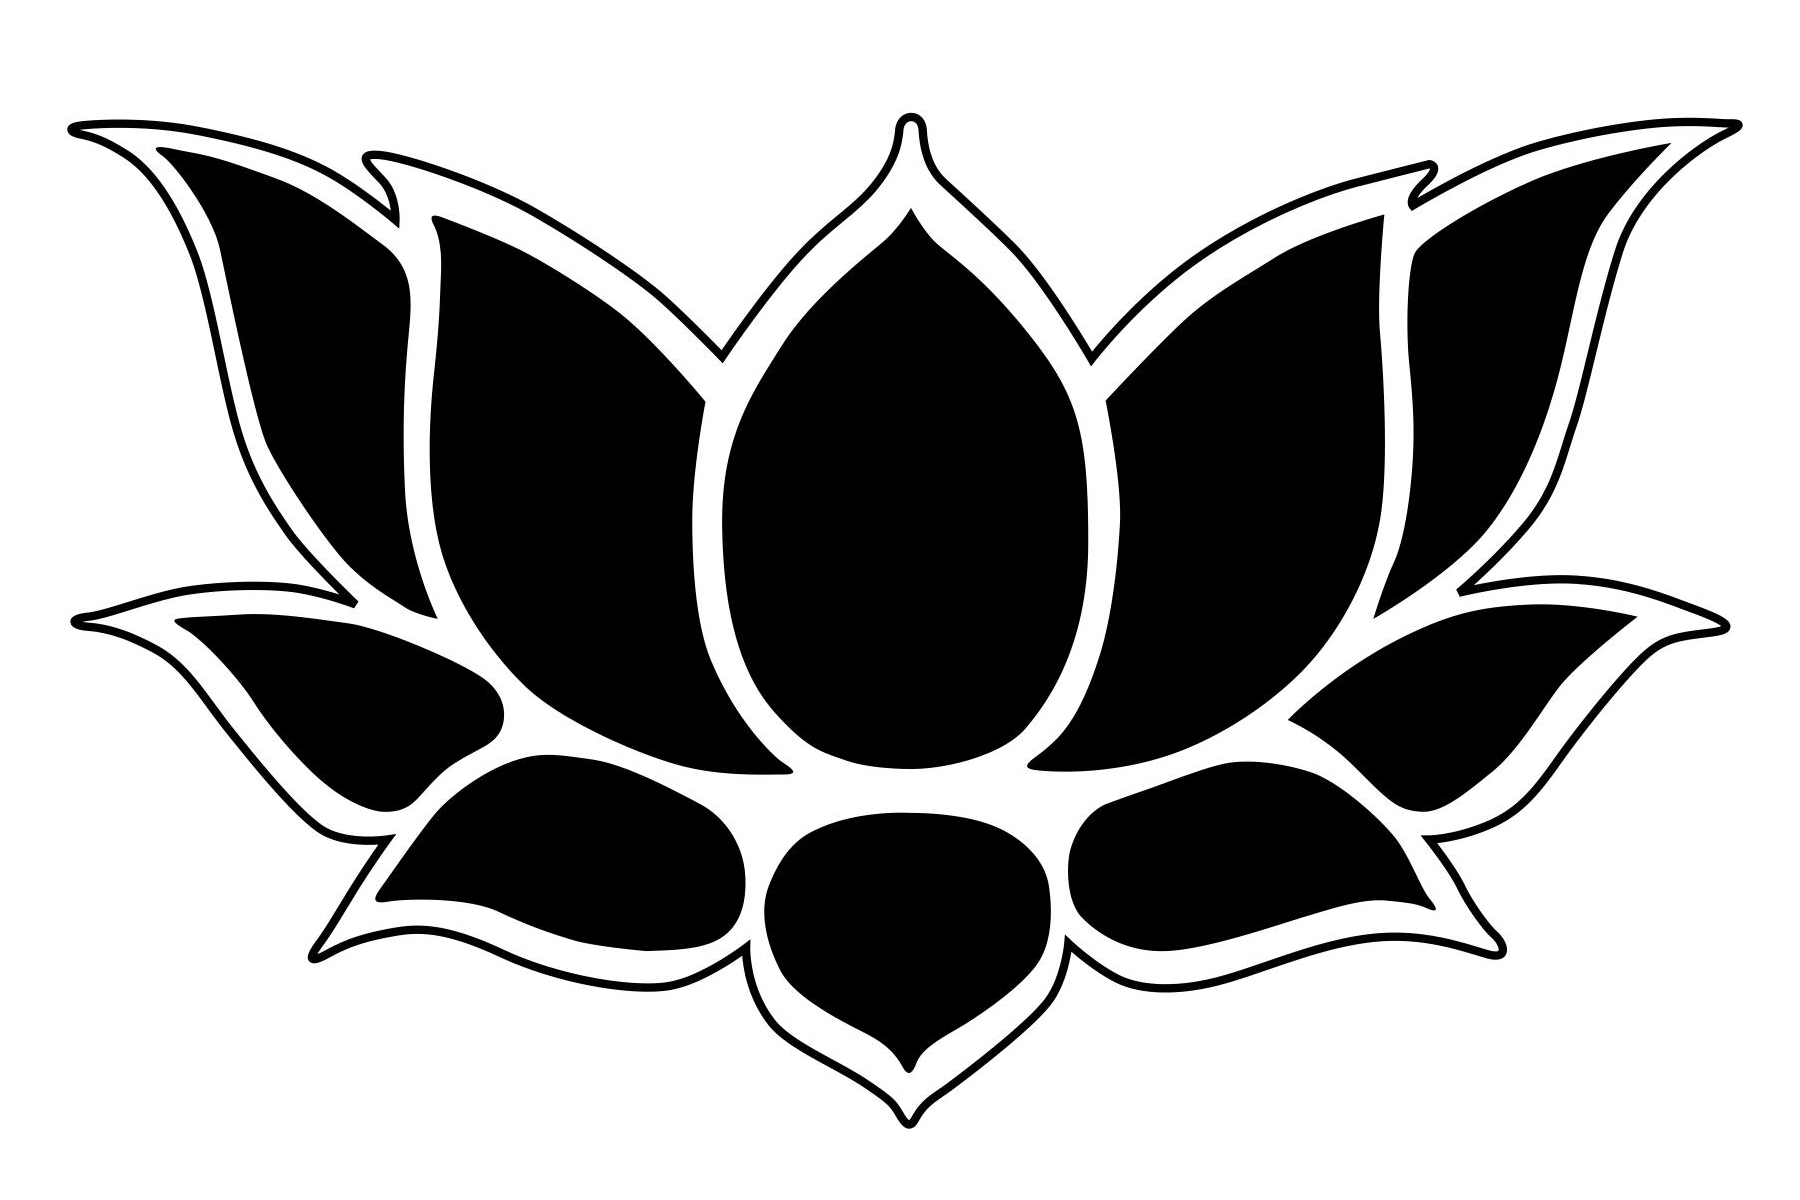 Simple clipart lotus Outline Free Flower Clipart Stencil